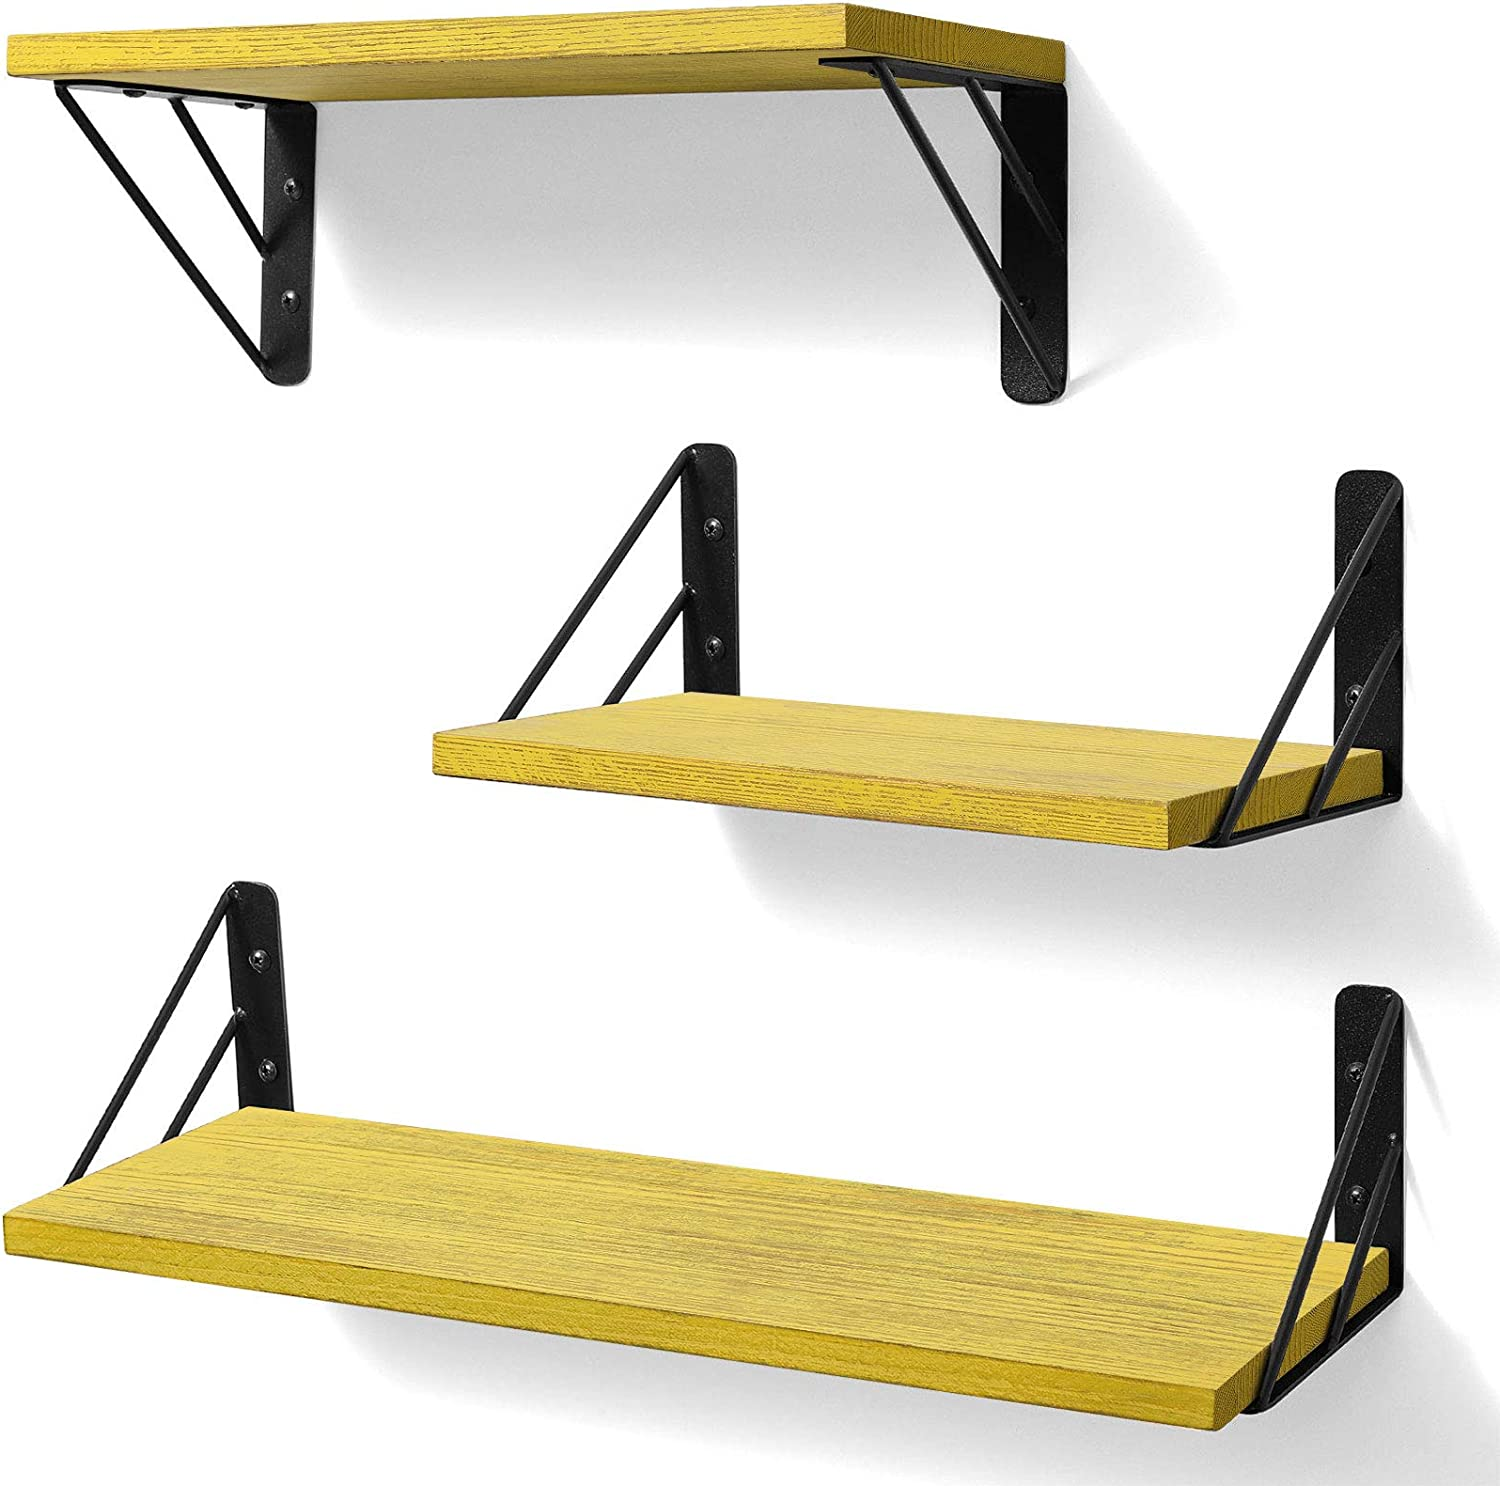 BAYKA Floating Shelves Wall Mounted, Rustic Wood Wall Shelves Decor Set of 3 for Bedroom, Bathroom, Living Room, Kitchen, Office, Laundry Room (Yellow)